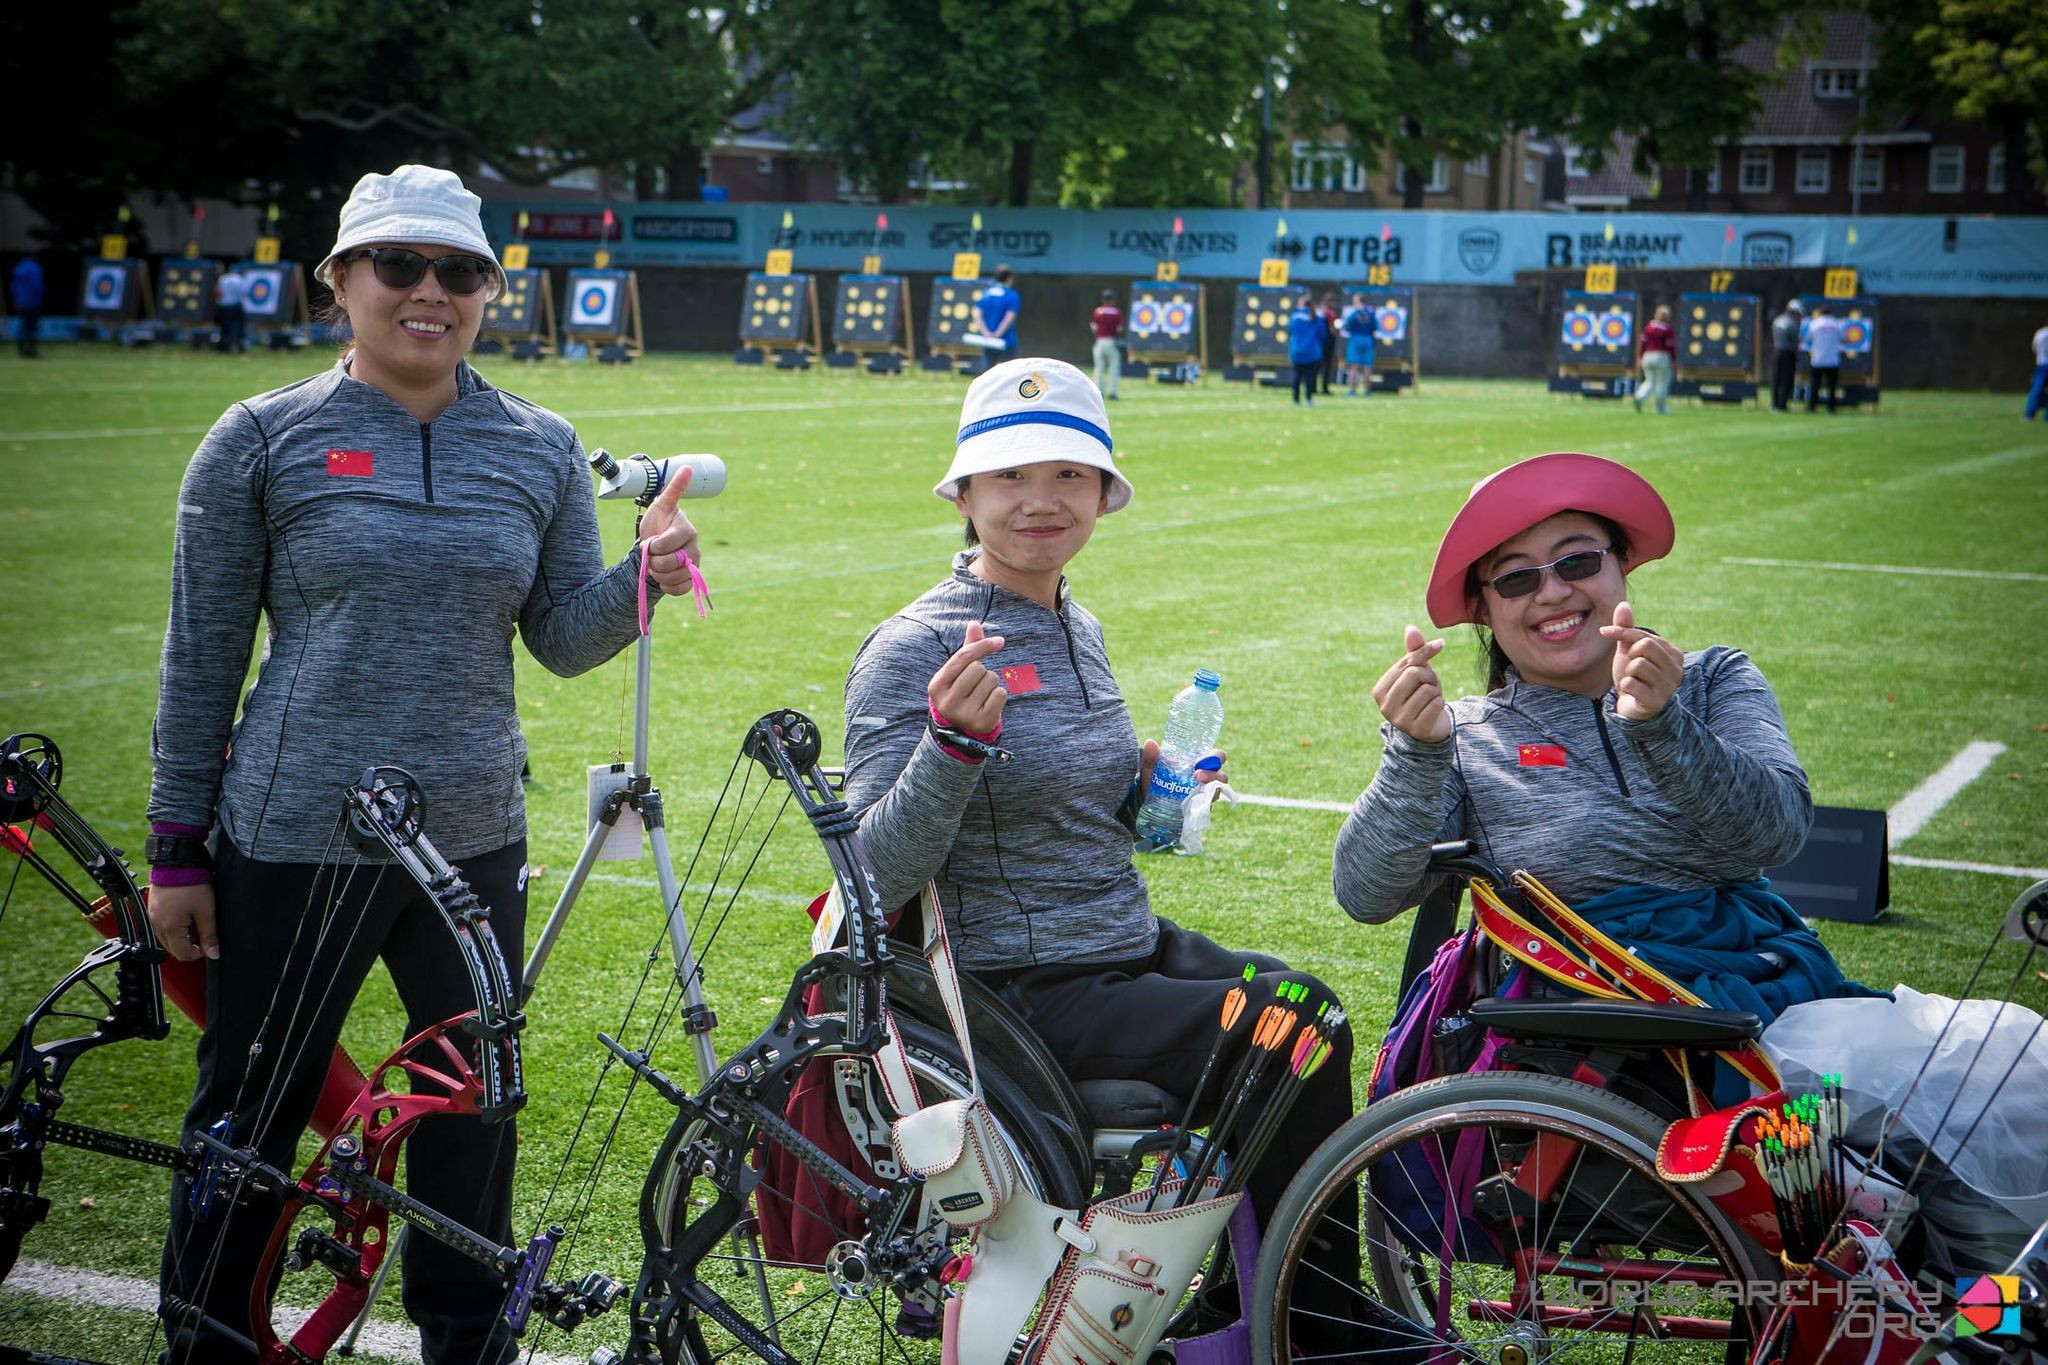 China set a world record in the compound women's open team event at the World Archery Para Championships ©World Archery